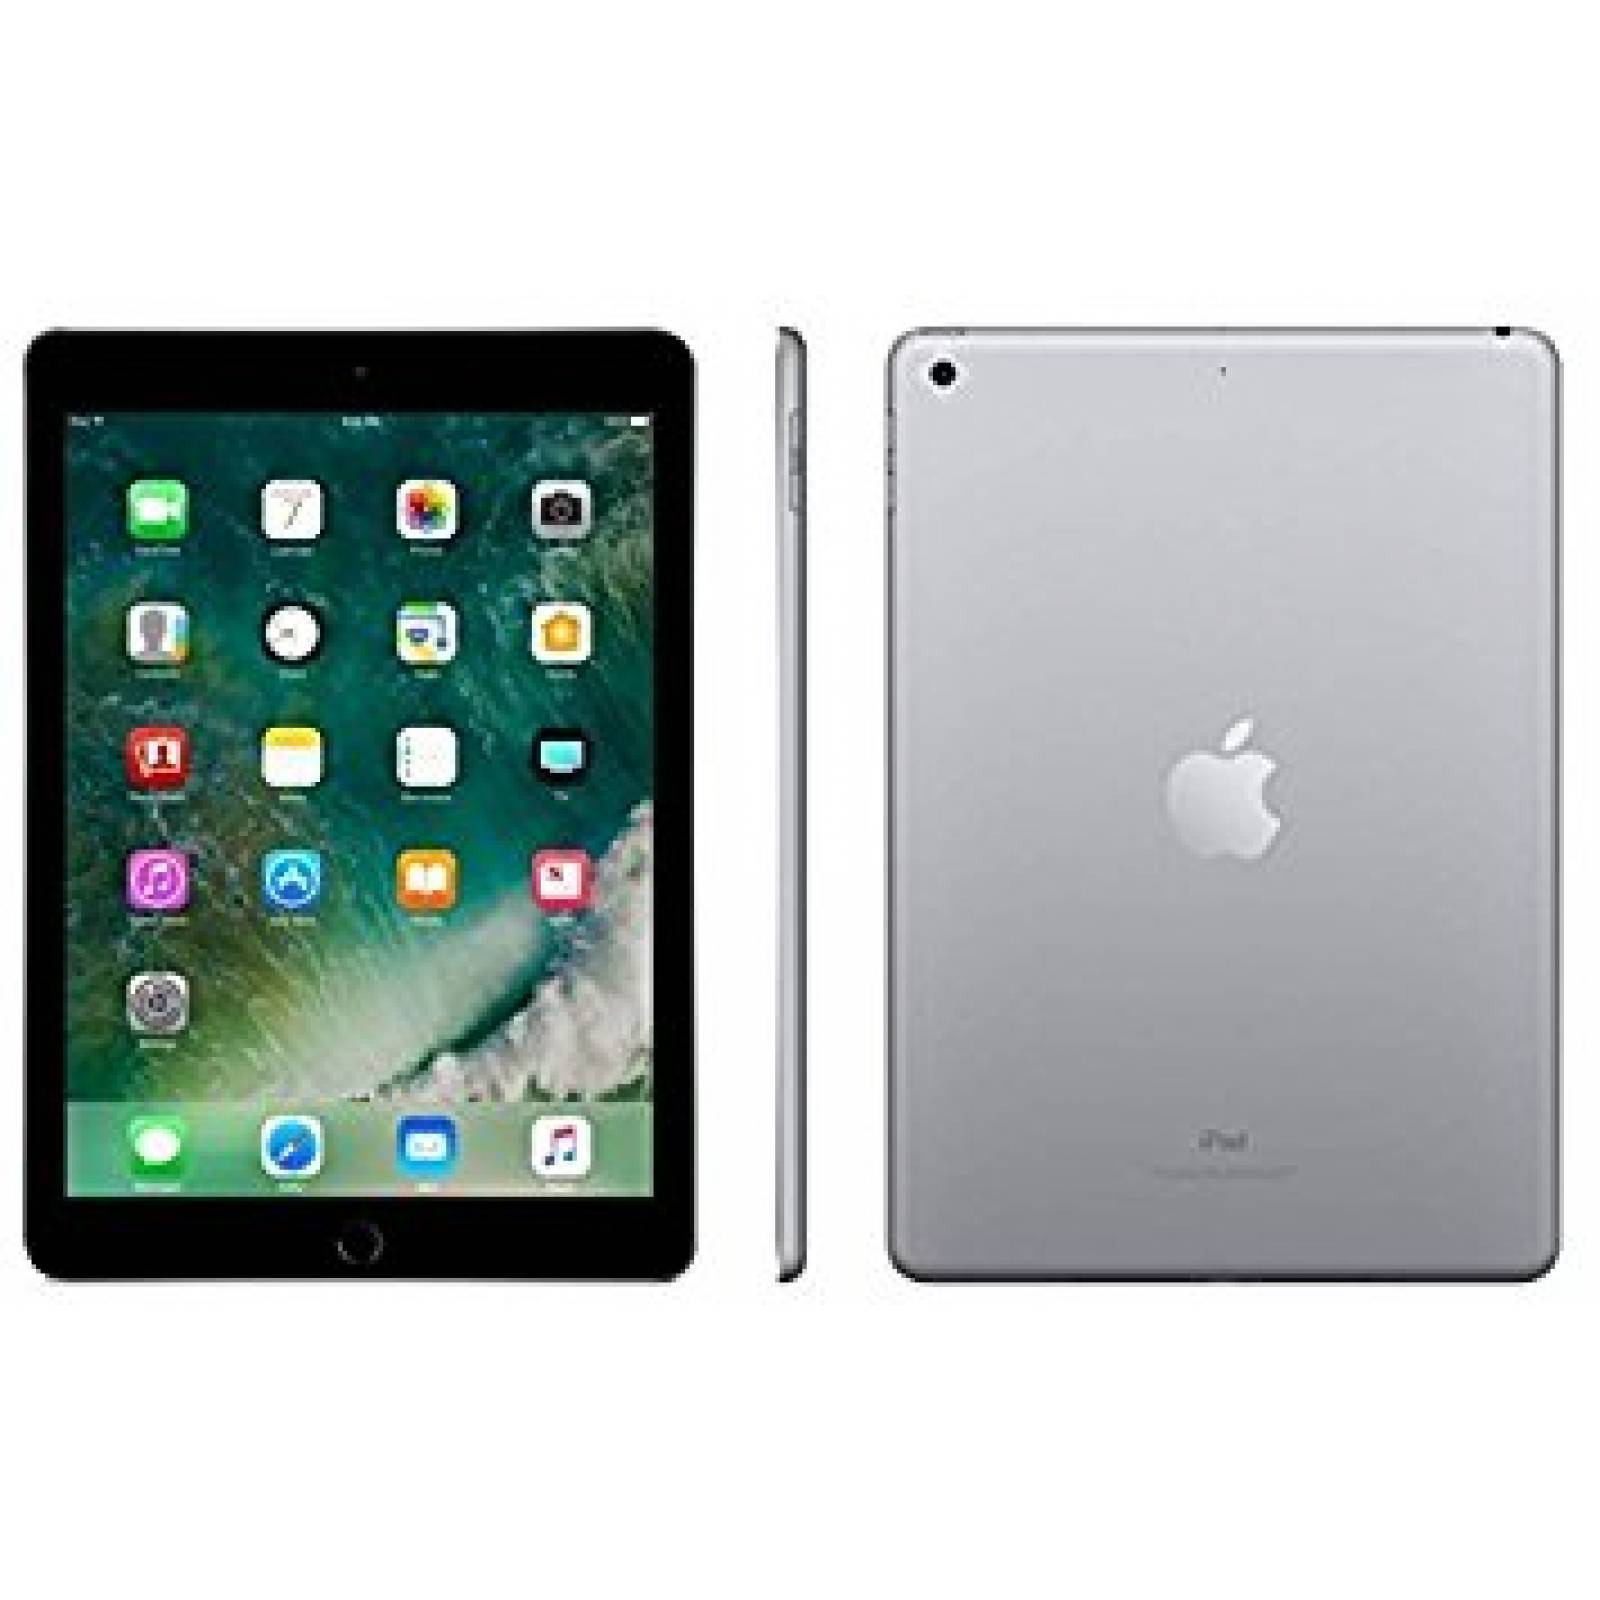 "iPad 6 Apple 32GB Cinza Espacial Tela 9.7"" Retina - Proc. Chip A10 Câm. 8MP + Frontal iOS 11 Touch ID"